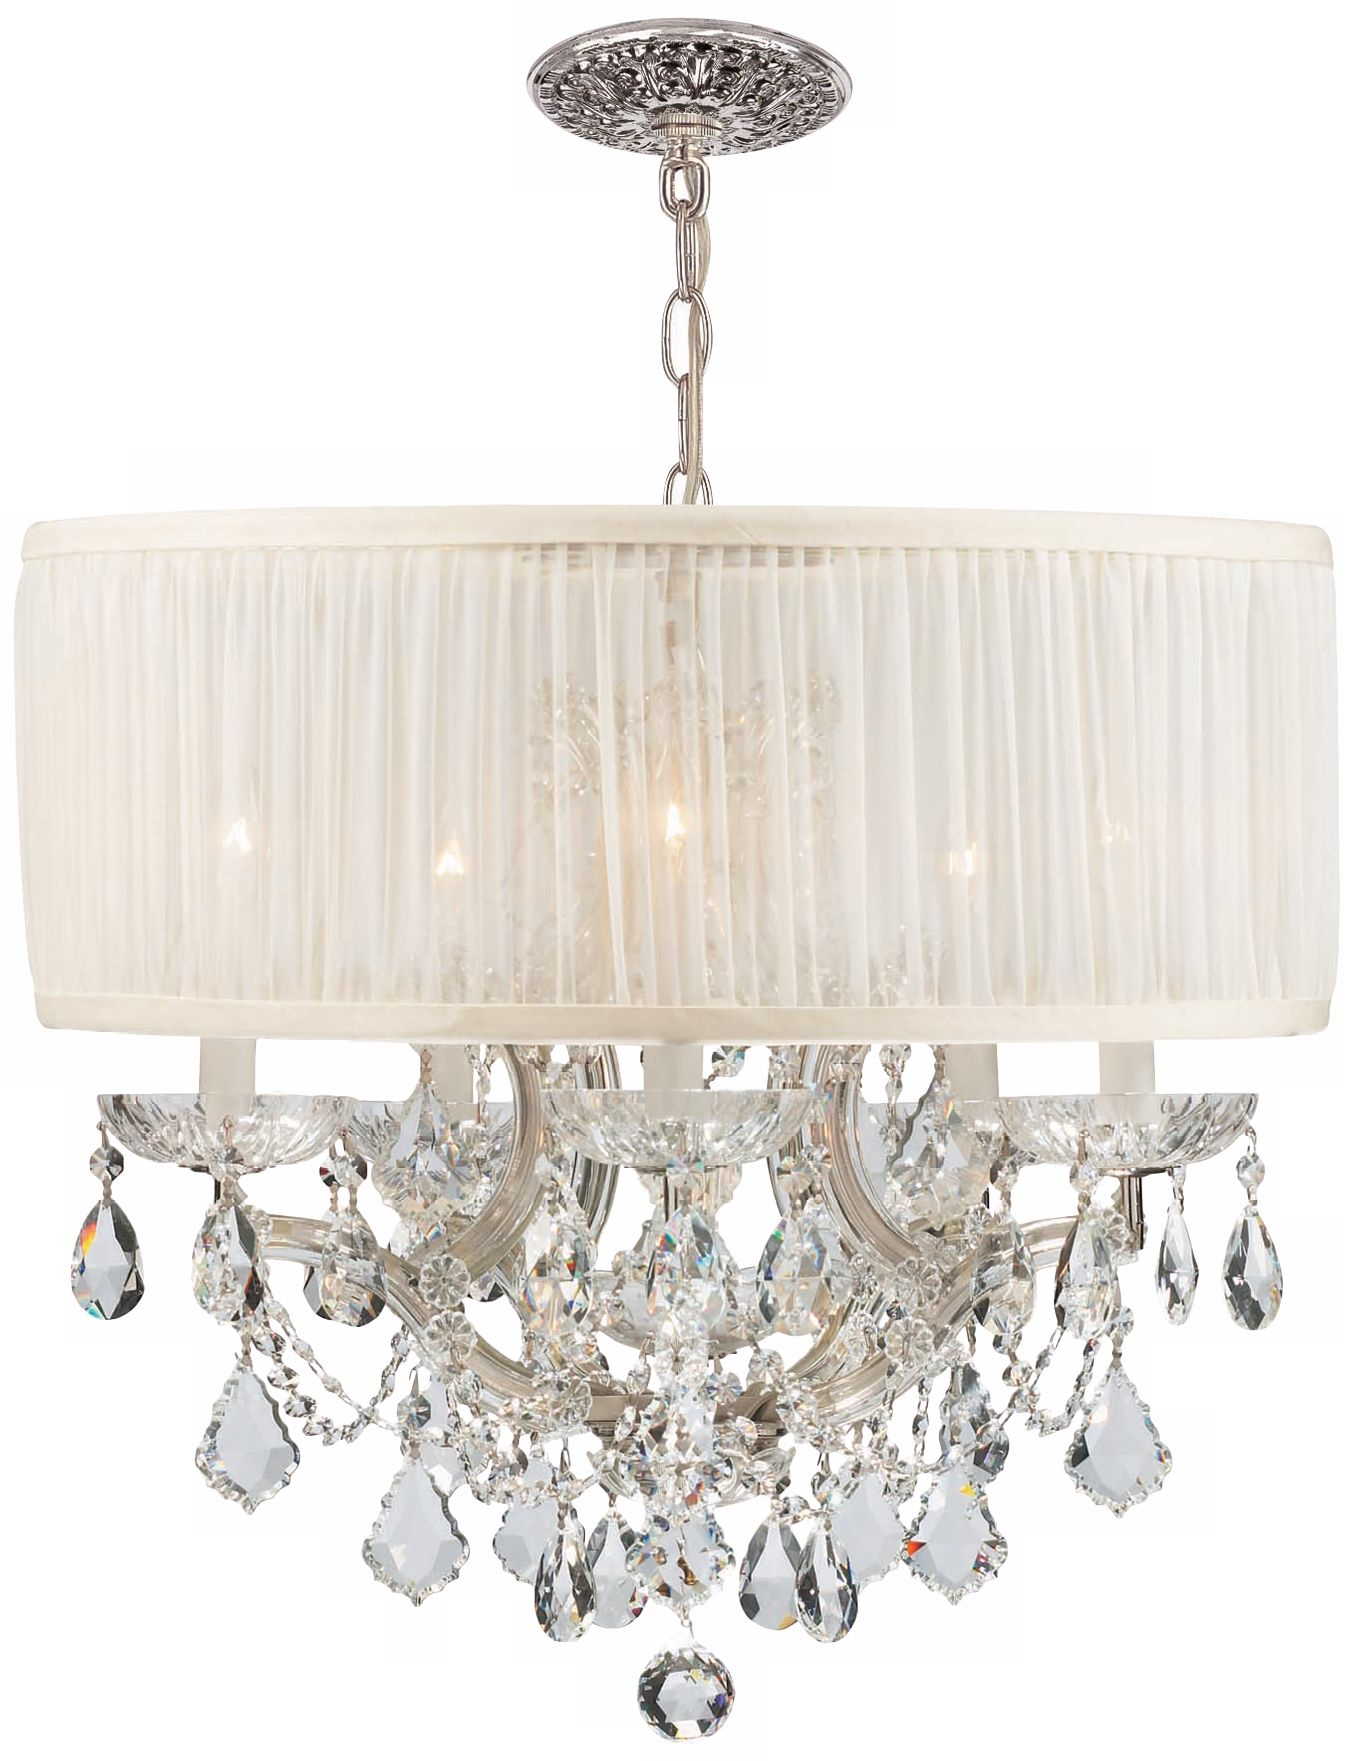 Brentwood Collection Chrome 6 Light Crystal Chandelier